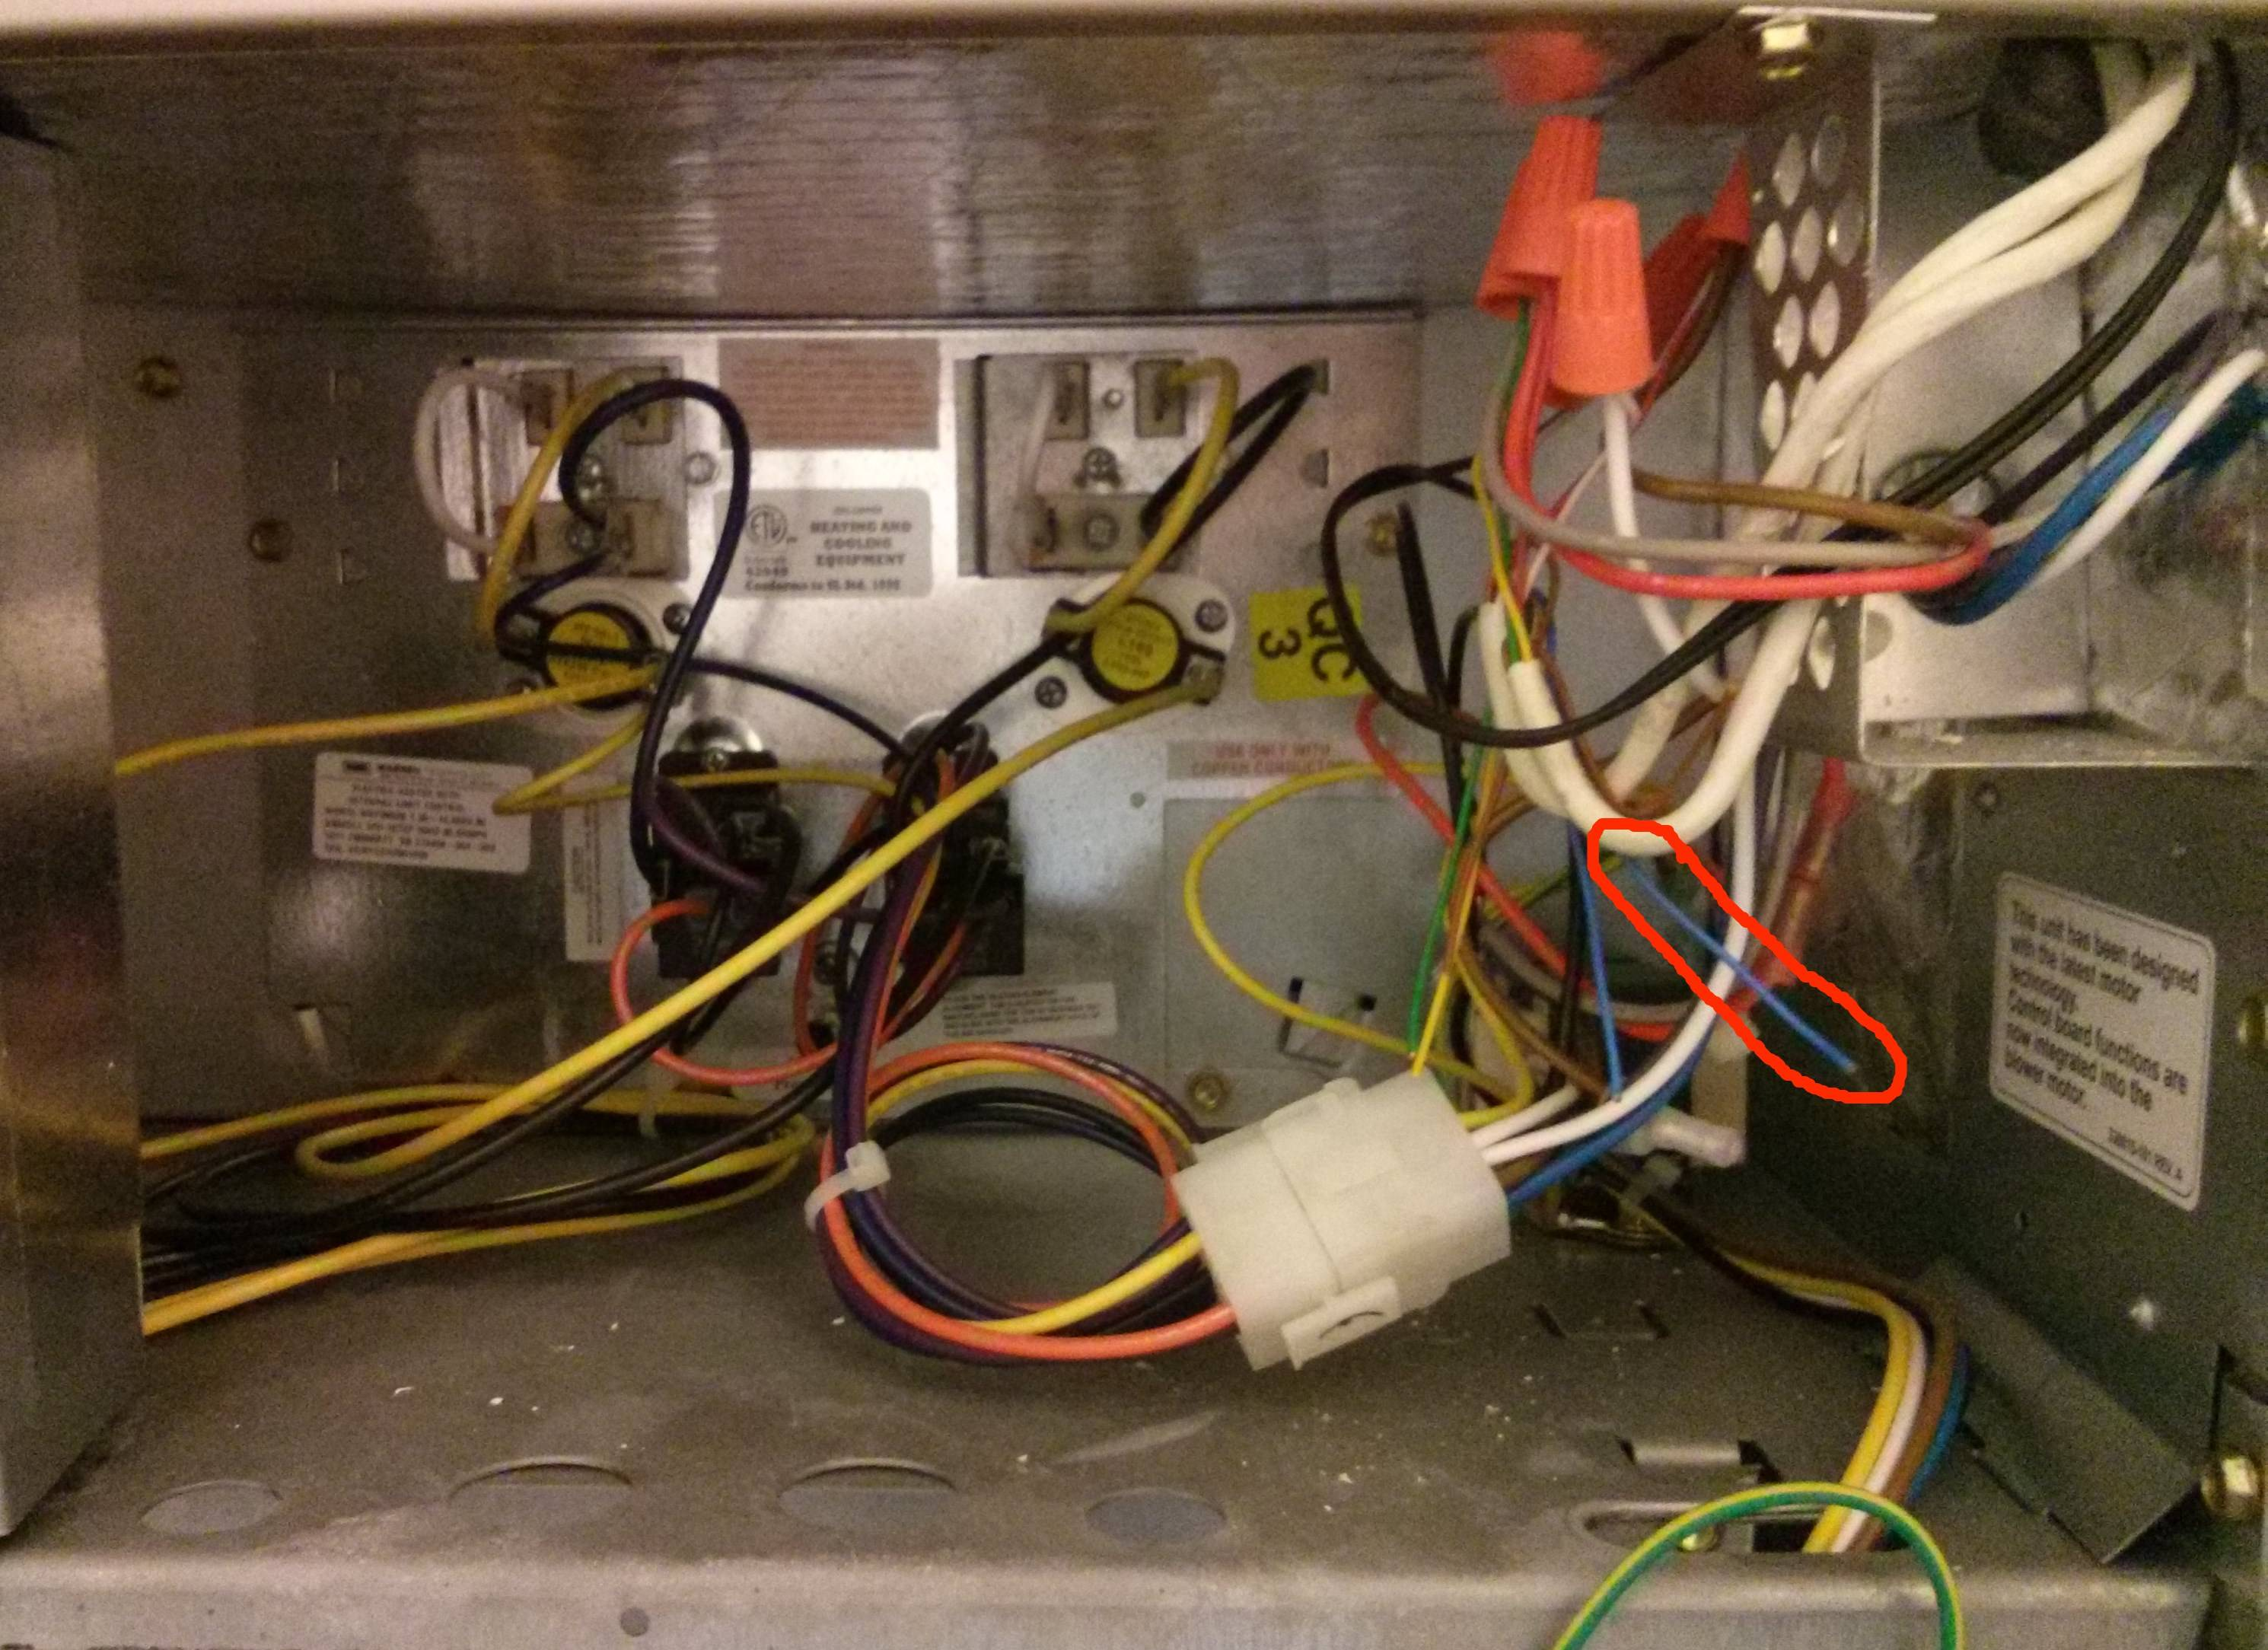 rheem central air conditioning wiring diagram mass airflow receiver circuit how do i connect the common wire in a carrier